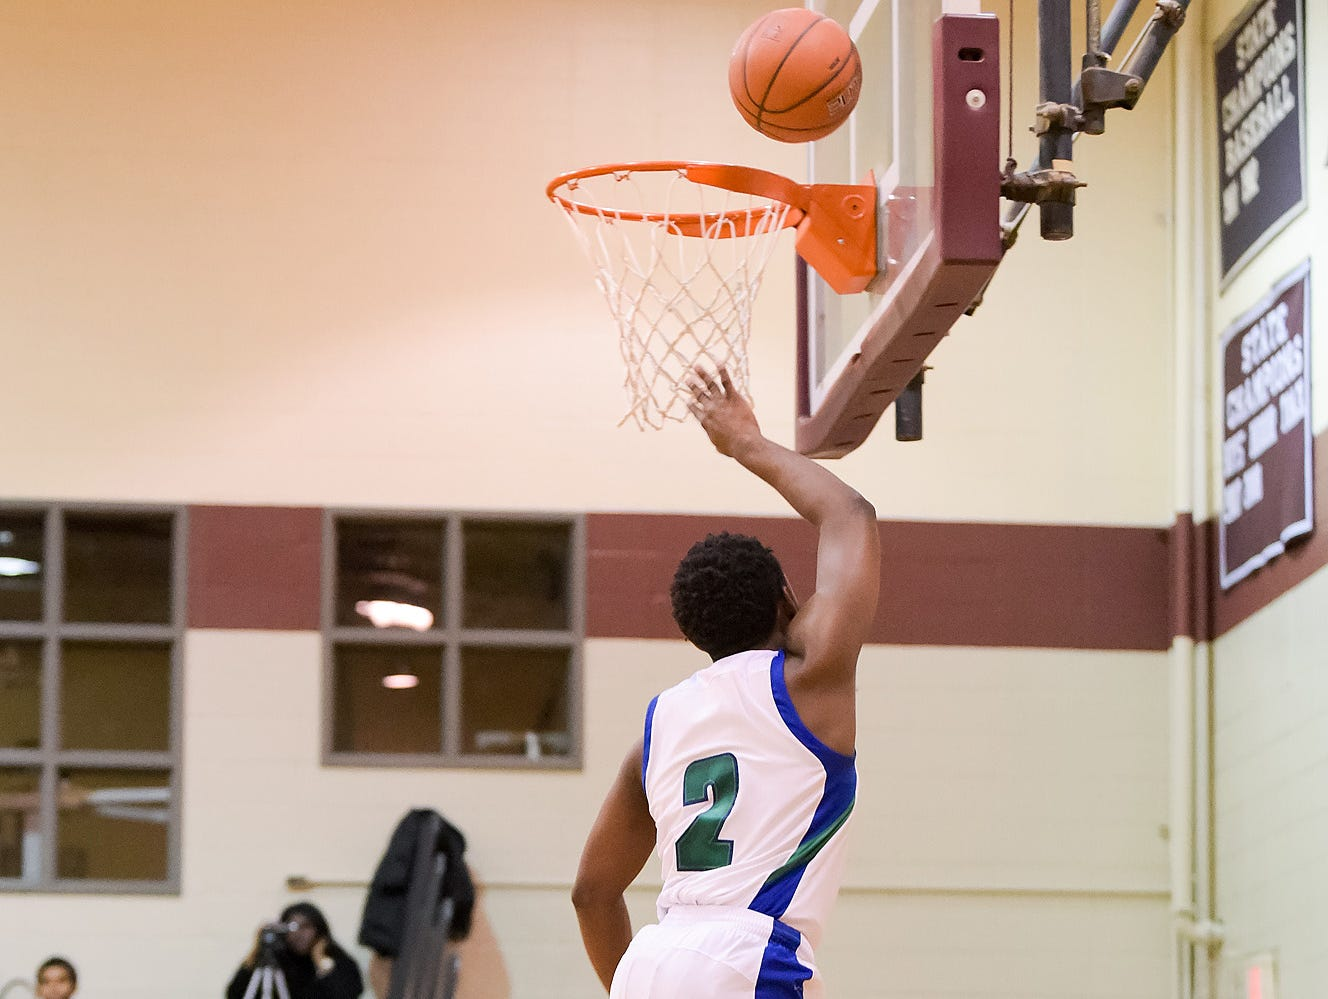 Kyson Rawls (No. 2) of St. Georges Technical High School takes the ball to the net.